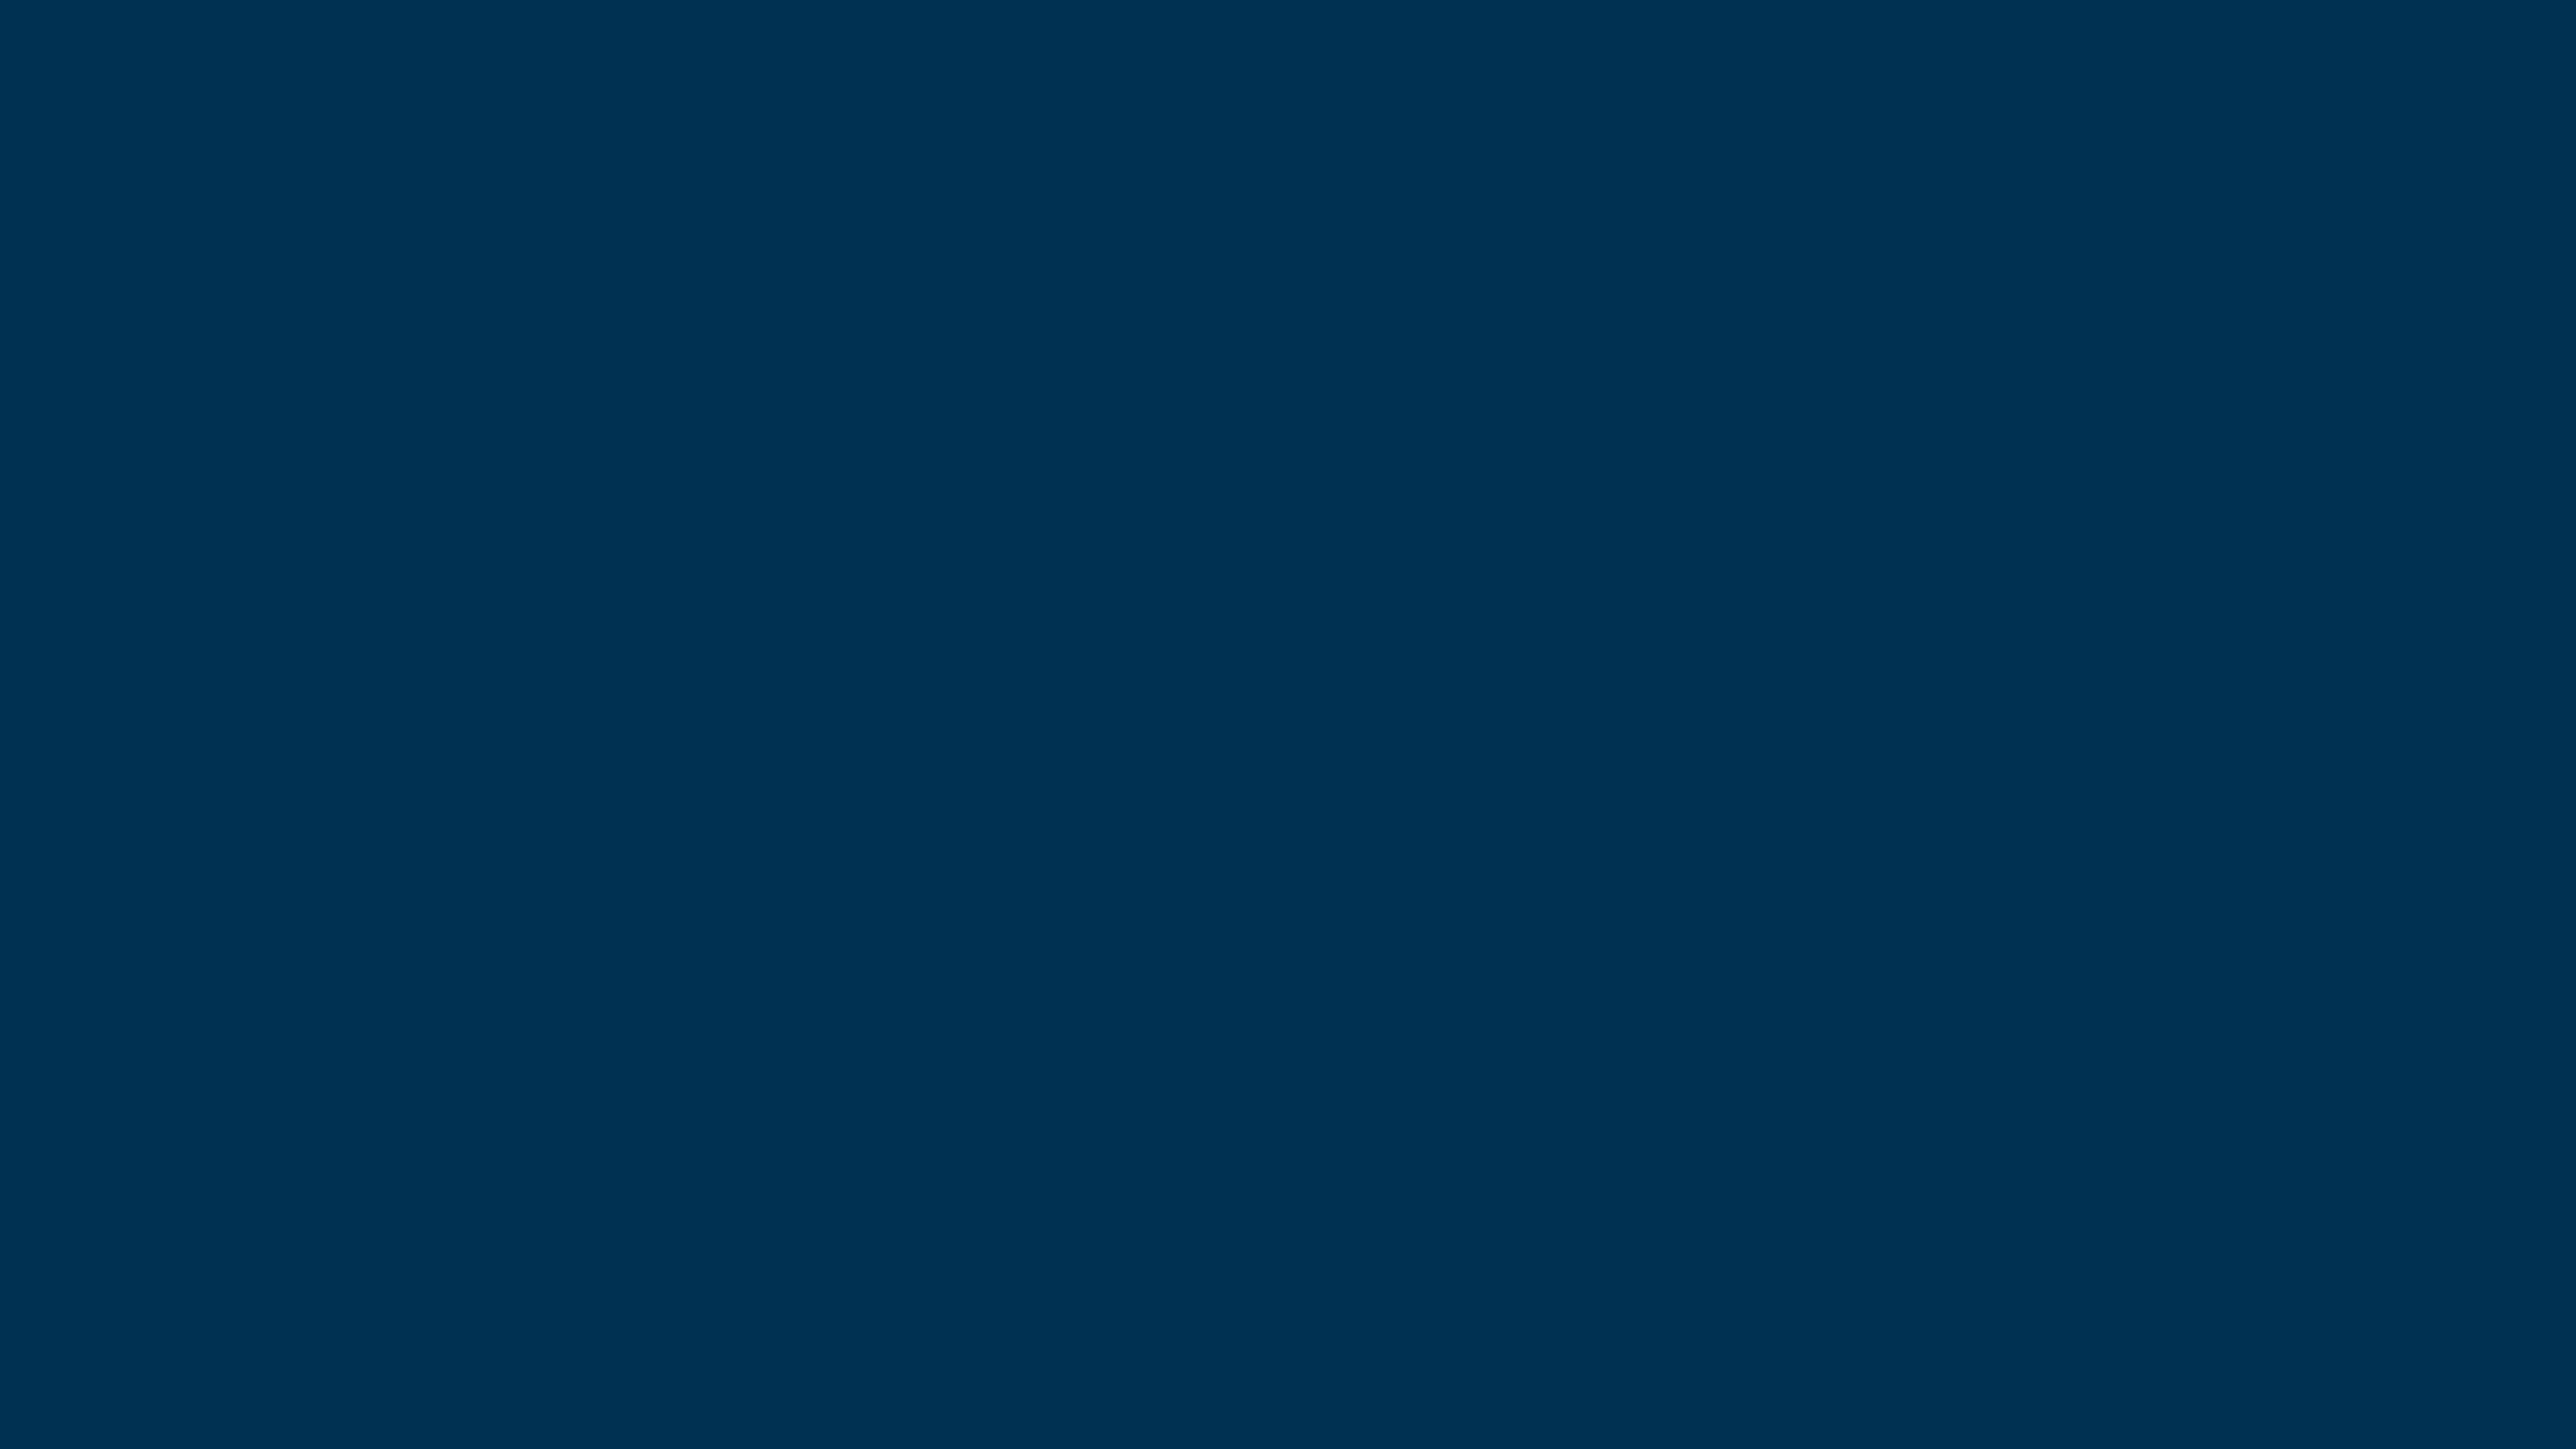 5120x2880 Prussian Blue Solid Color Background